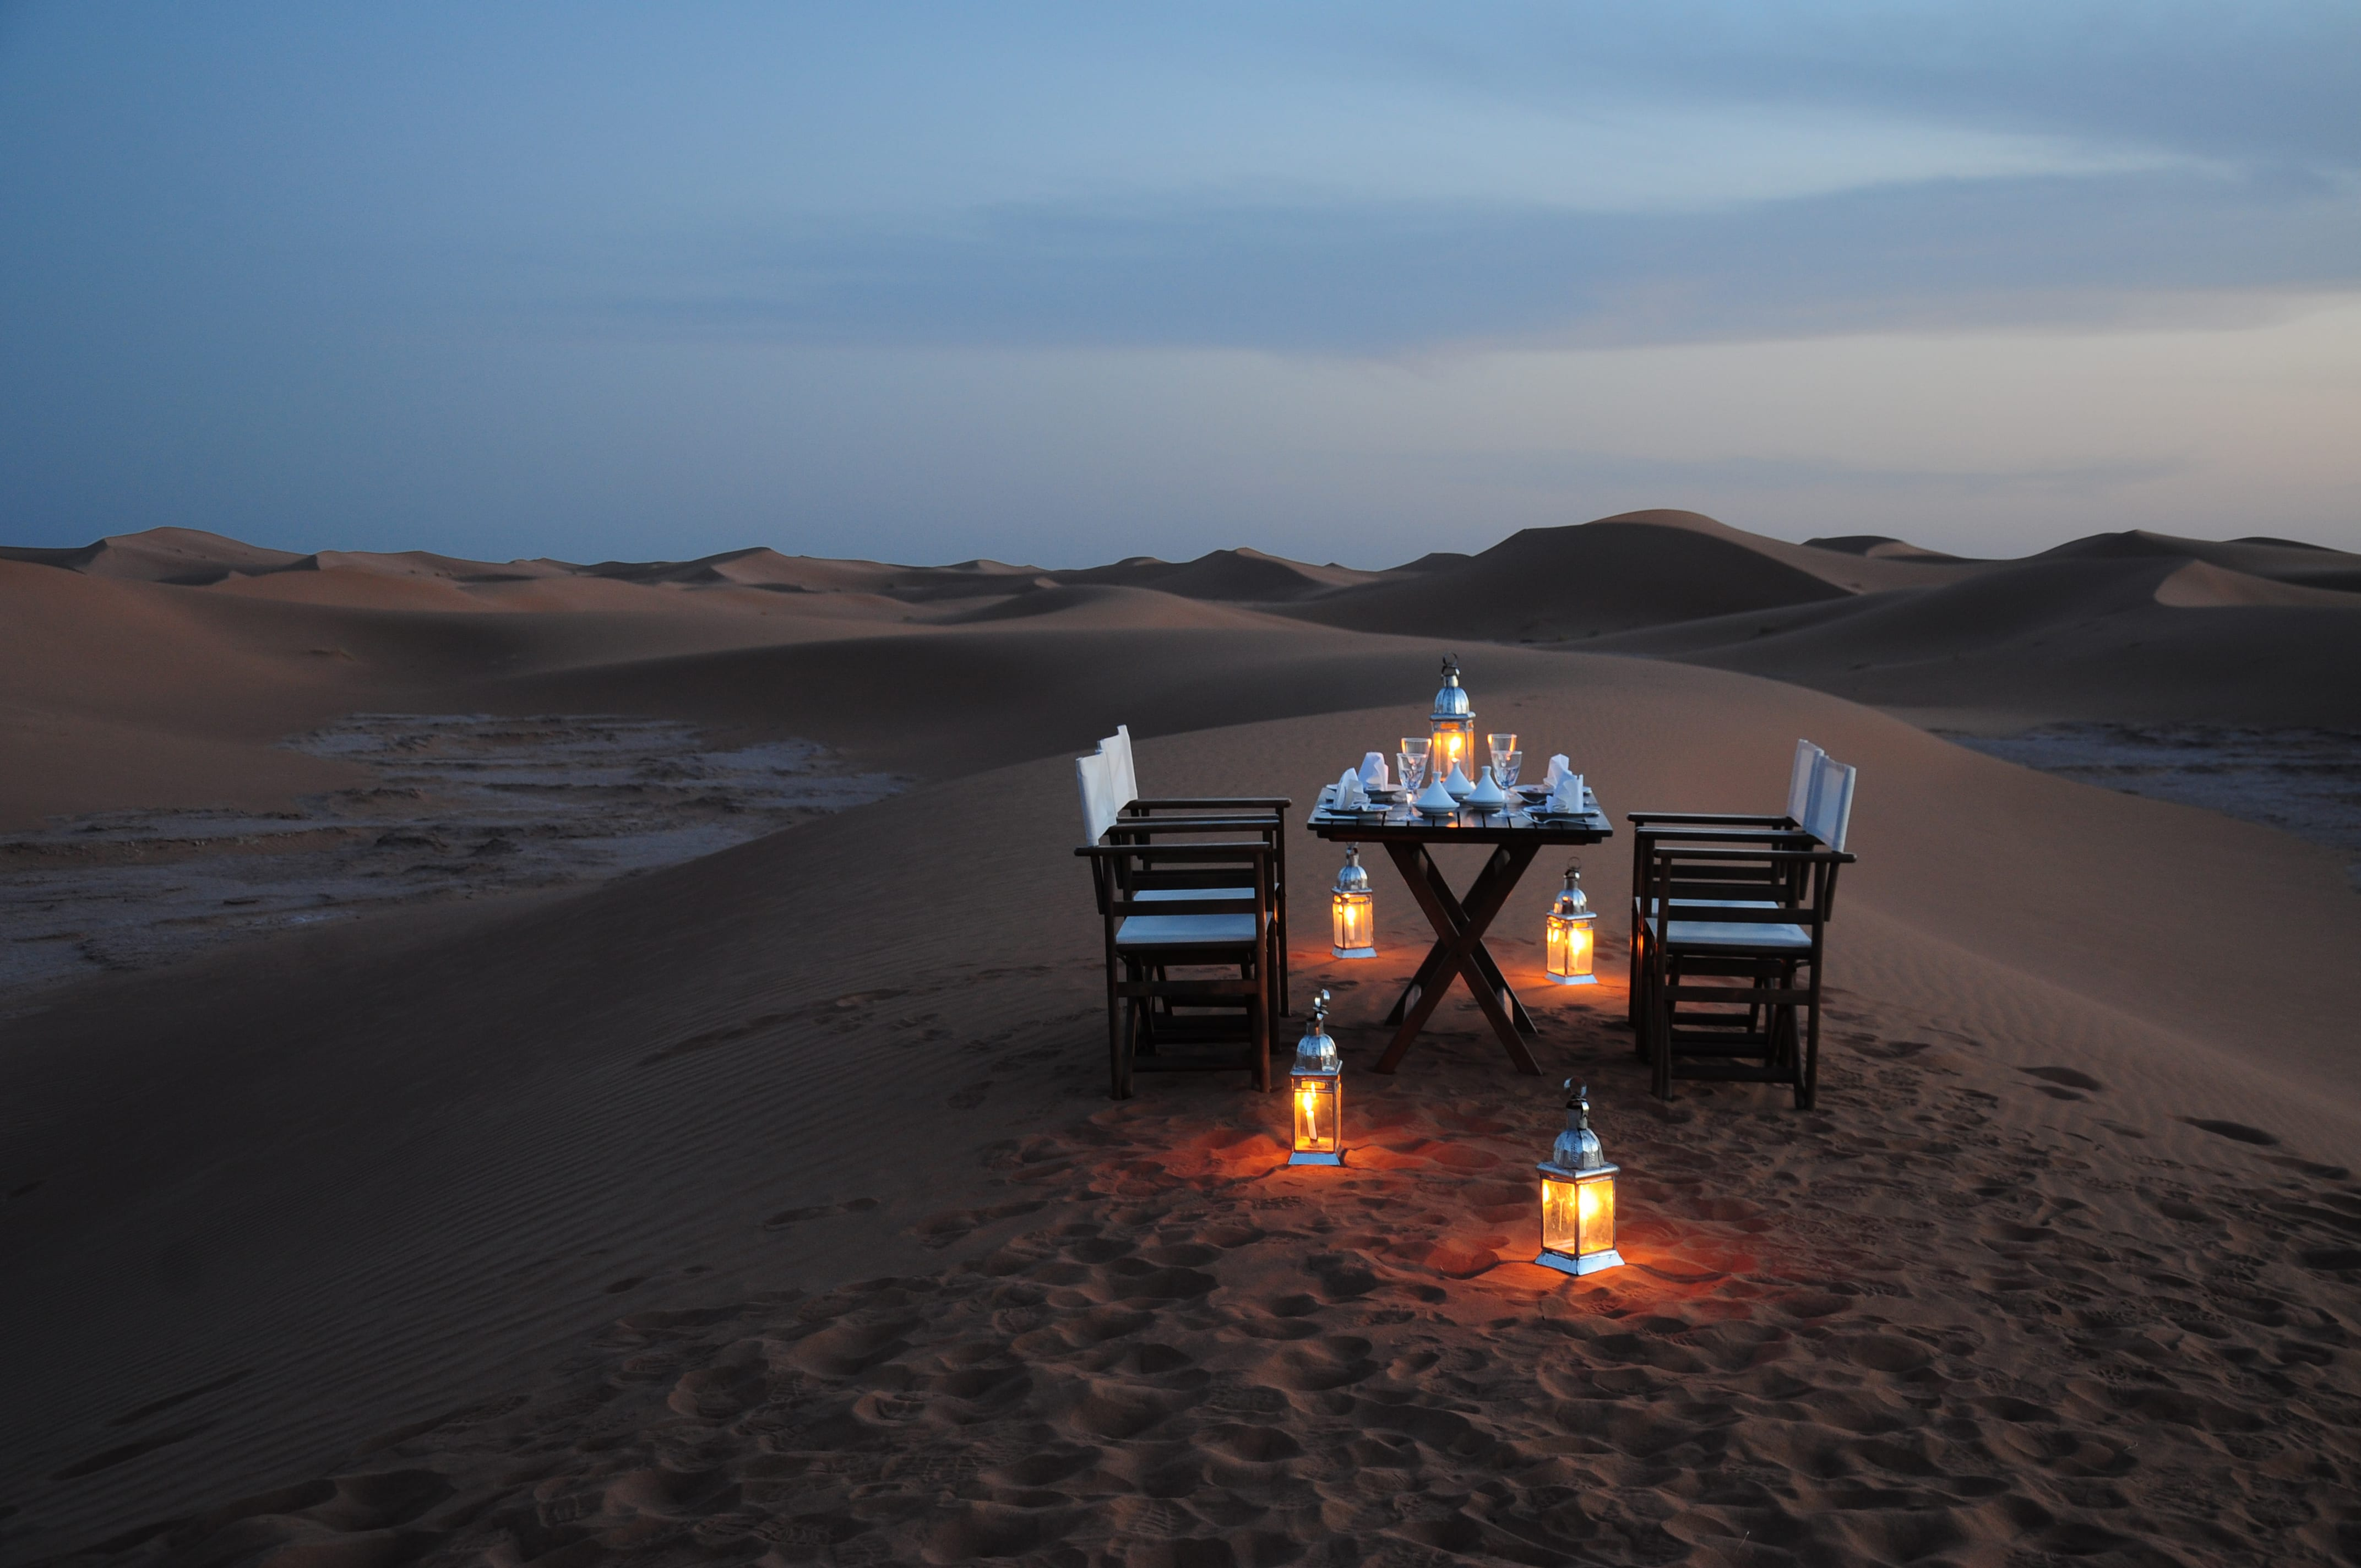 Alfresco Dining Table for Four at Evening in the Moroccan Desert